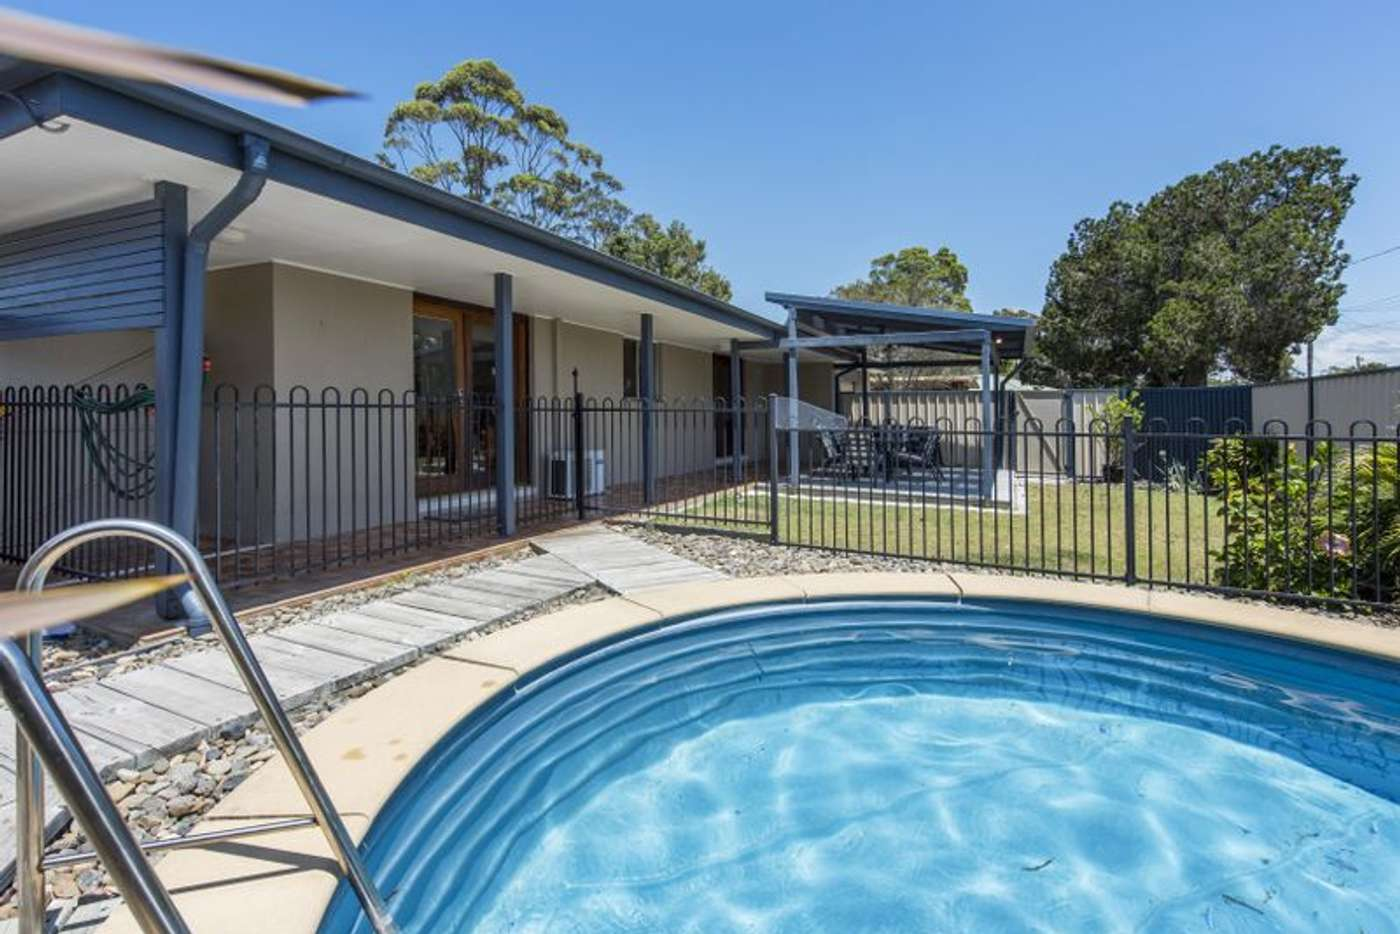 Main view of Homely house listing, 16 Loxton Avenue, Iluka NSW 2466